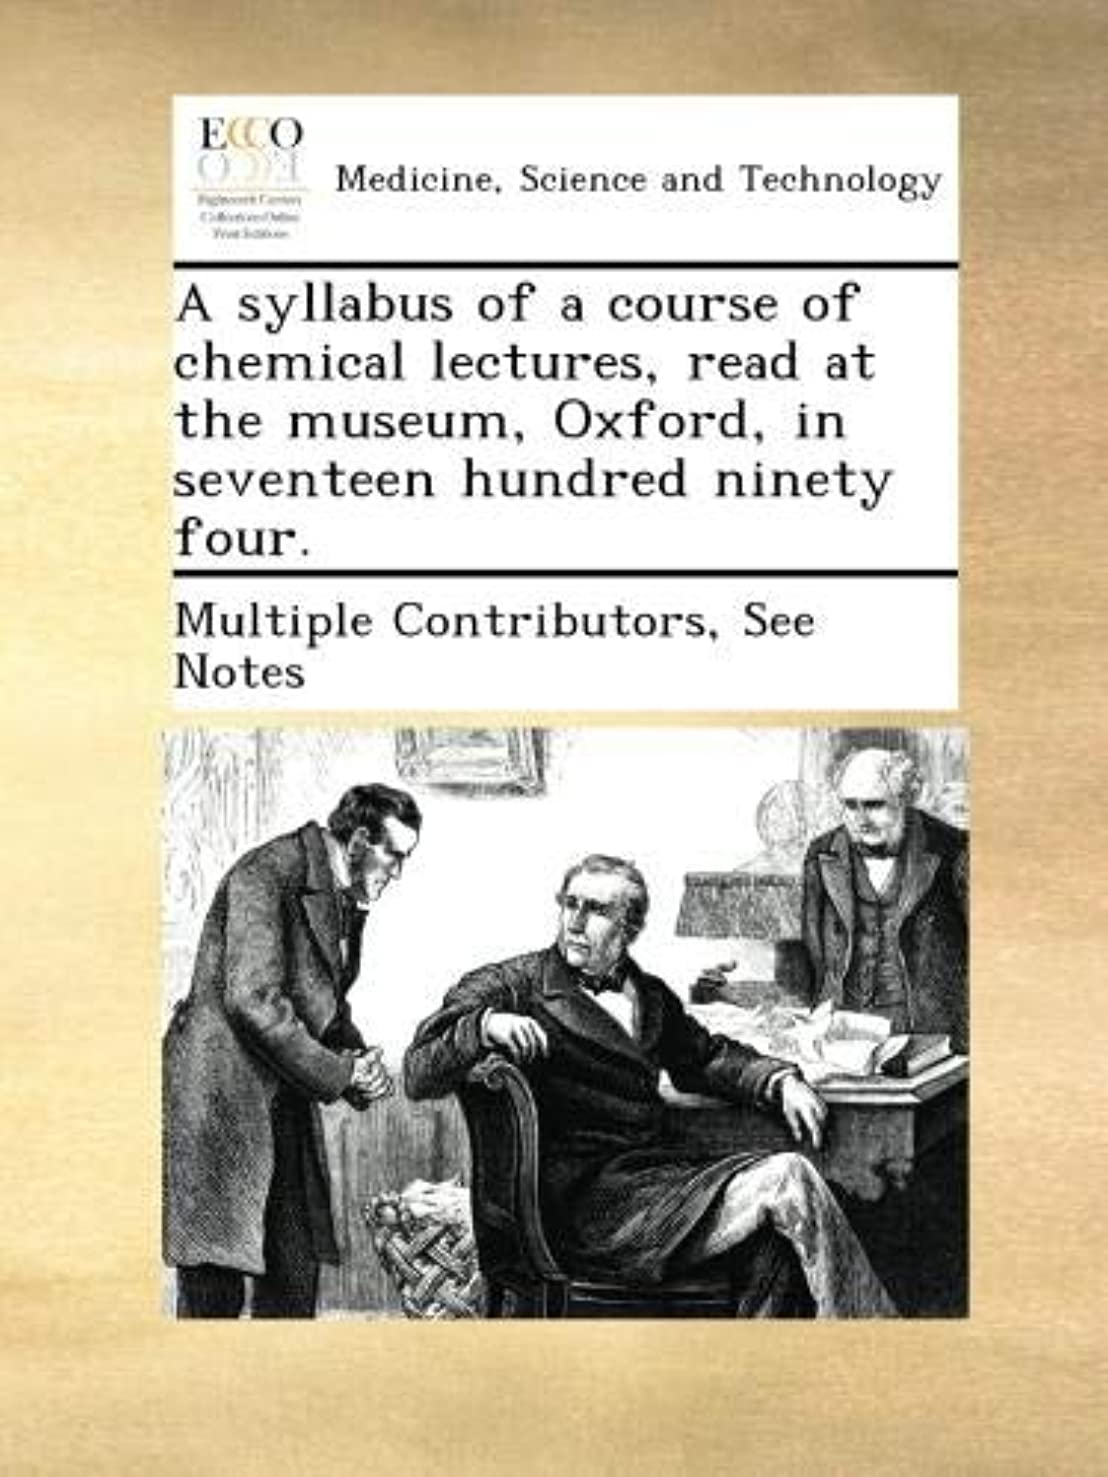 ちょうつがい木曜日ダイエットA syllabus of a course of chemical lectures, read at the museum, Oxford, in seventeen hundred ninety four.